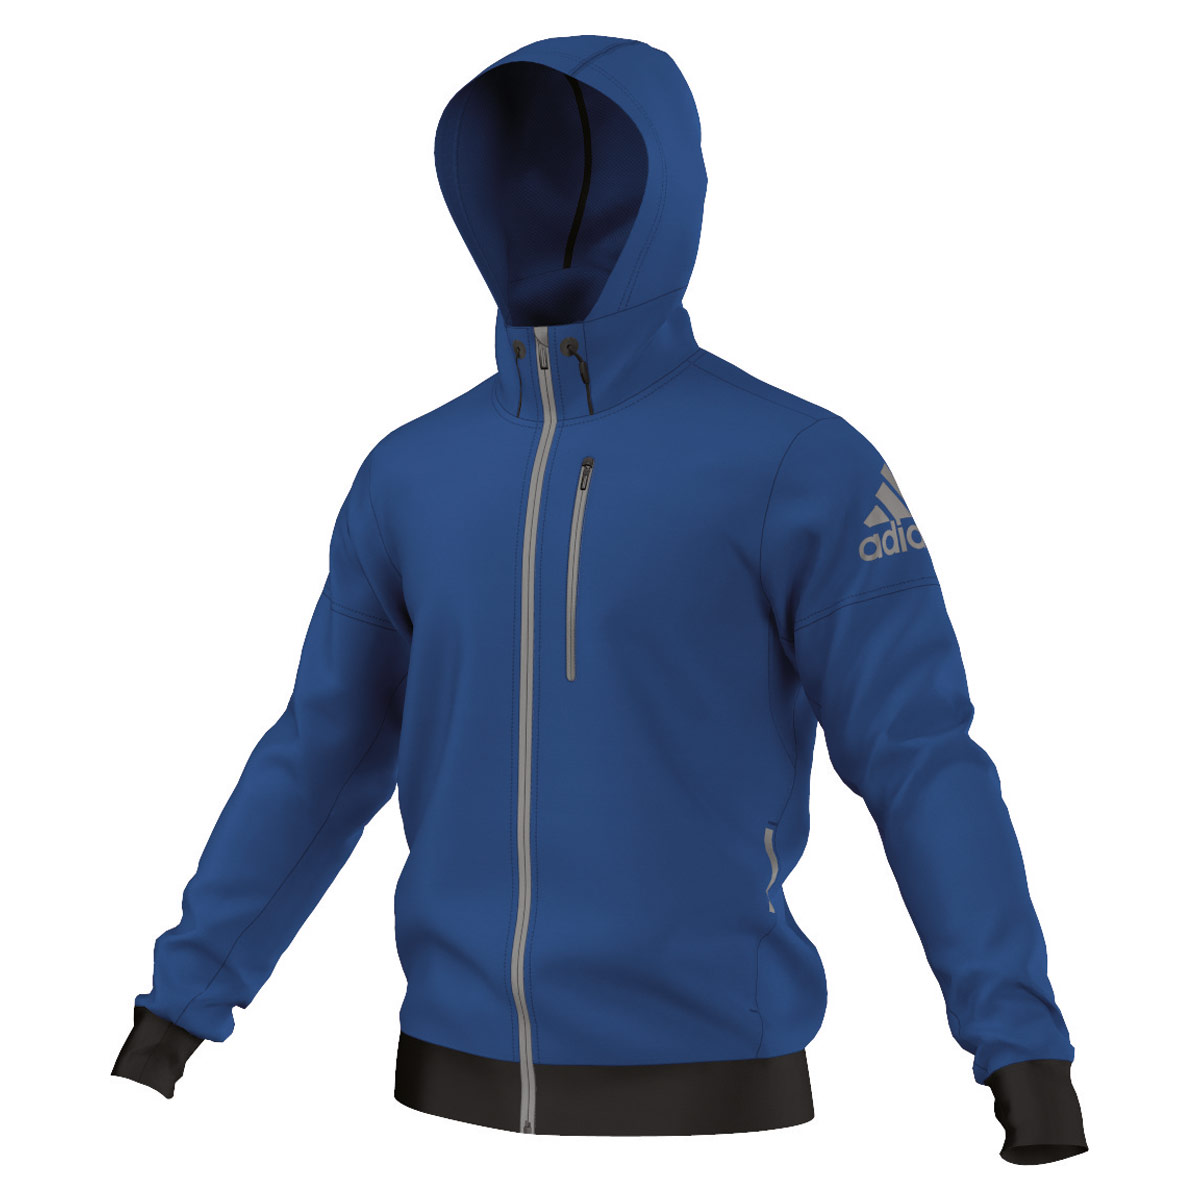 Hommes Adidas Hoodie C Daybreaker Vestes Course gY7Ibyf6v